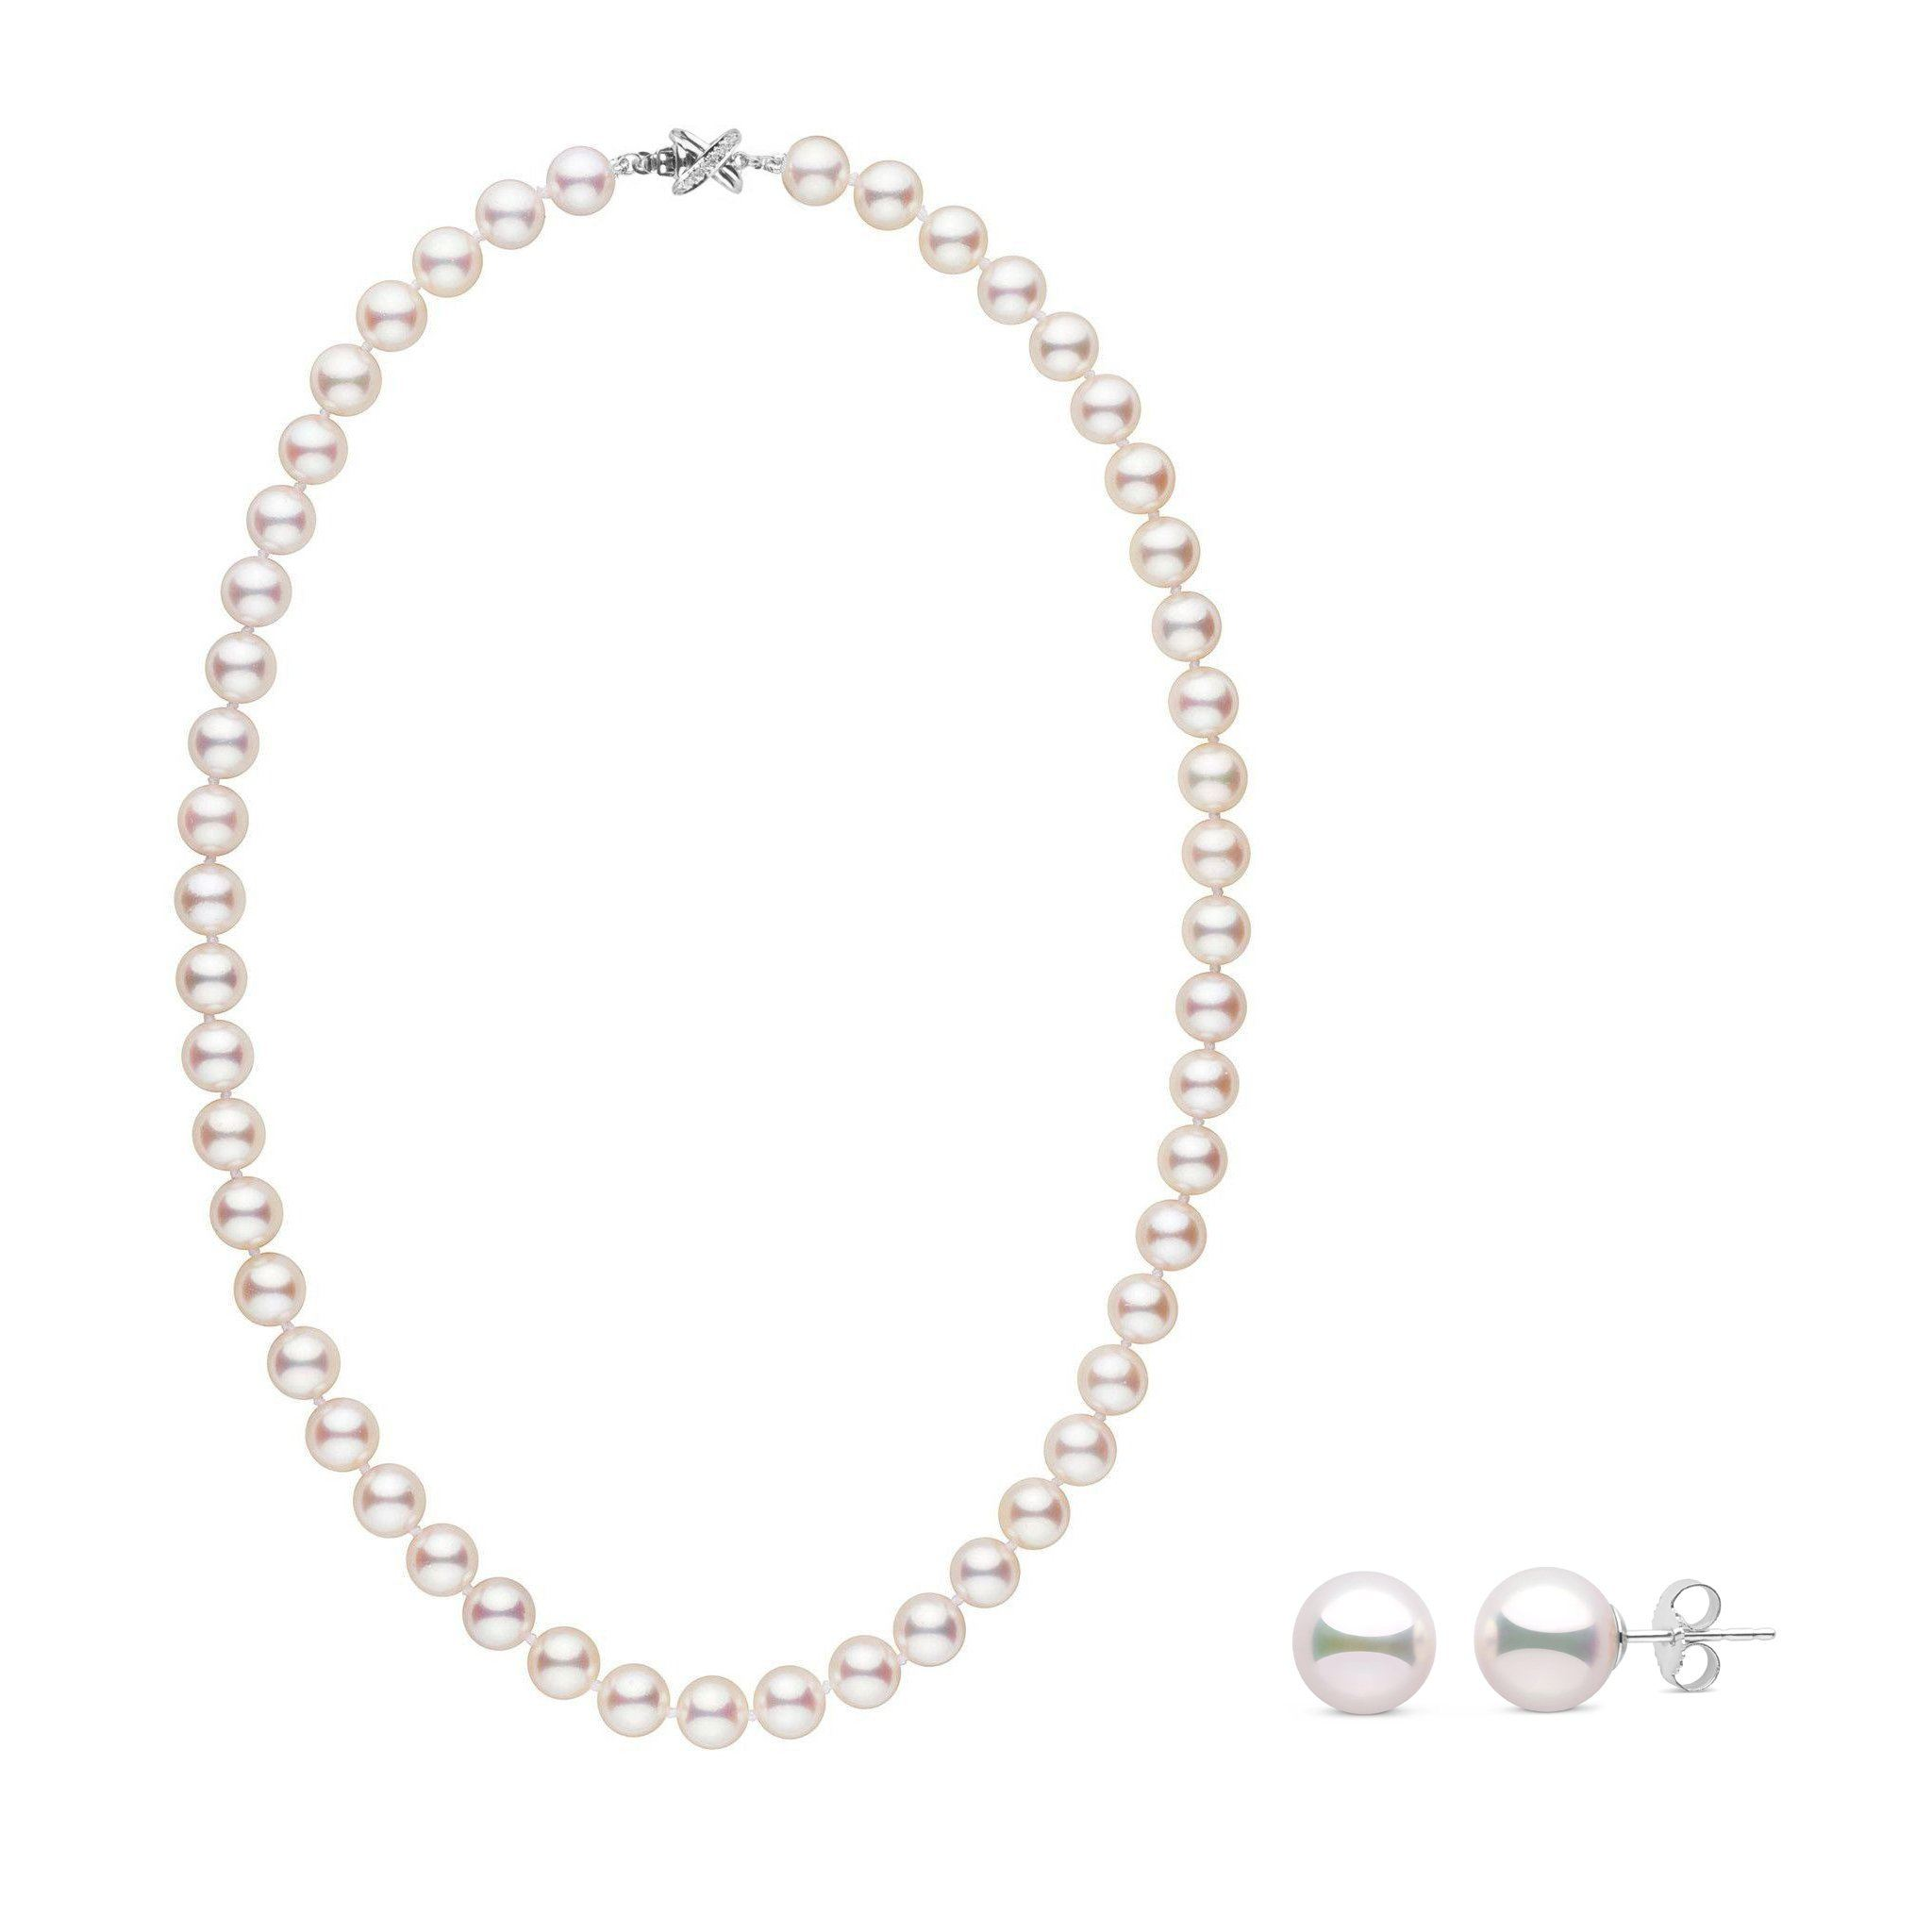 8.0-8.5 mm White Hanadama Pearl Set with Diamond X Clasp